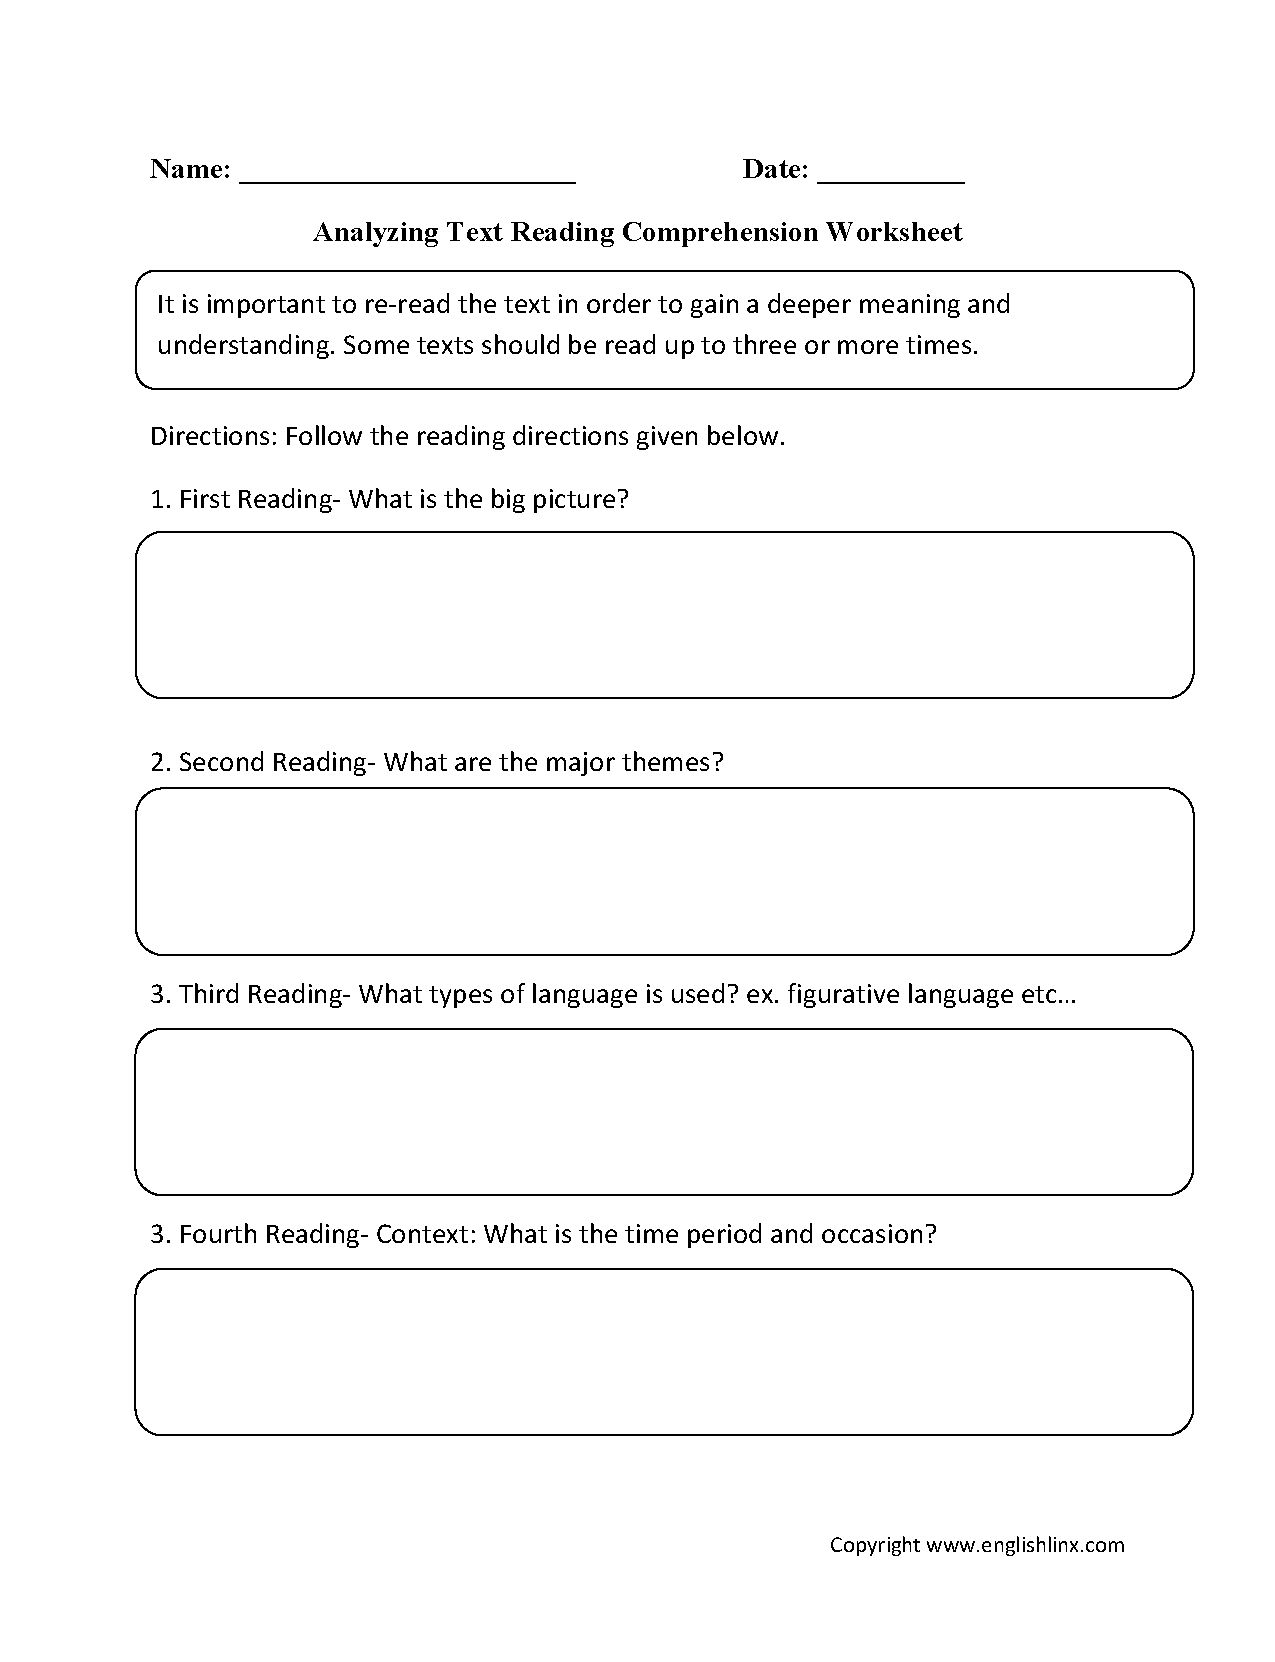 Reading Prehension Worksheets